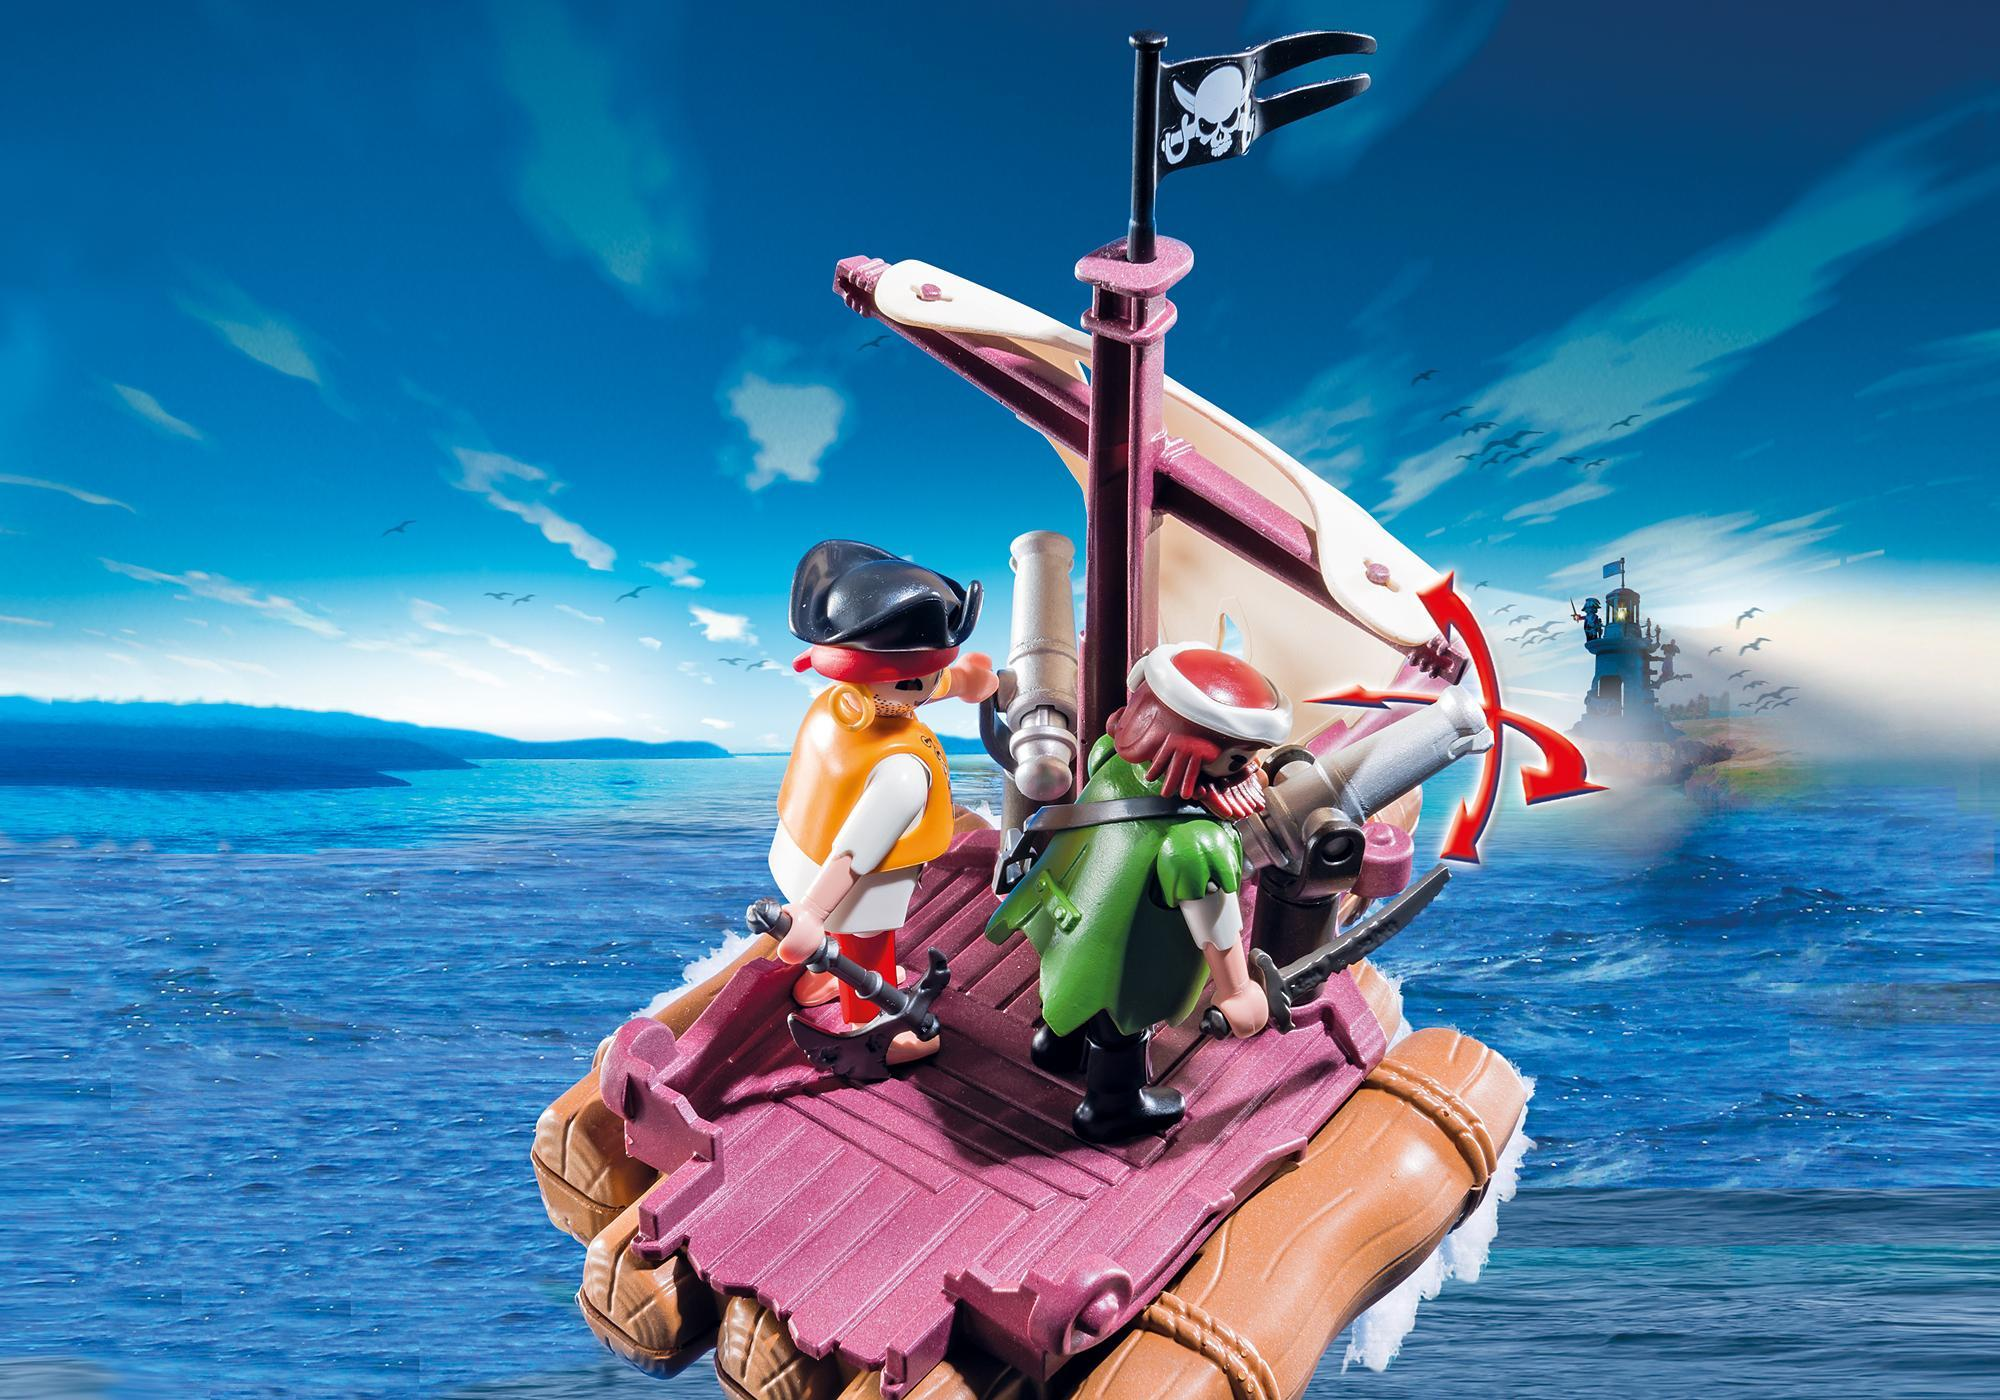 http://media.playmobil.com/i/playmobil/6682_product_extra1